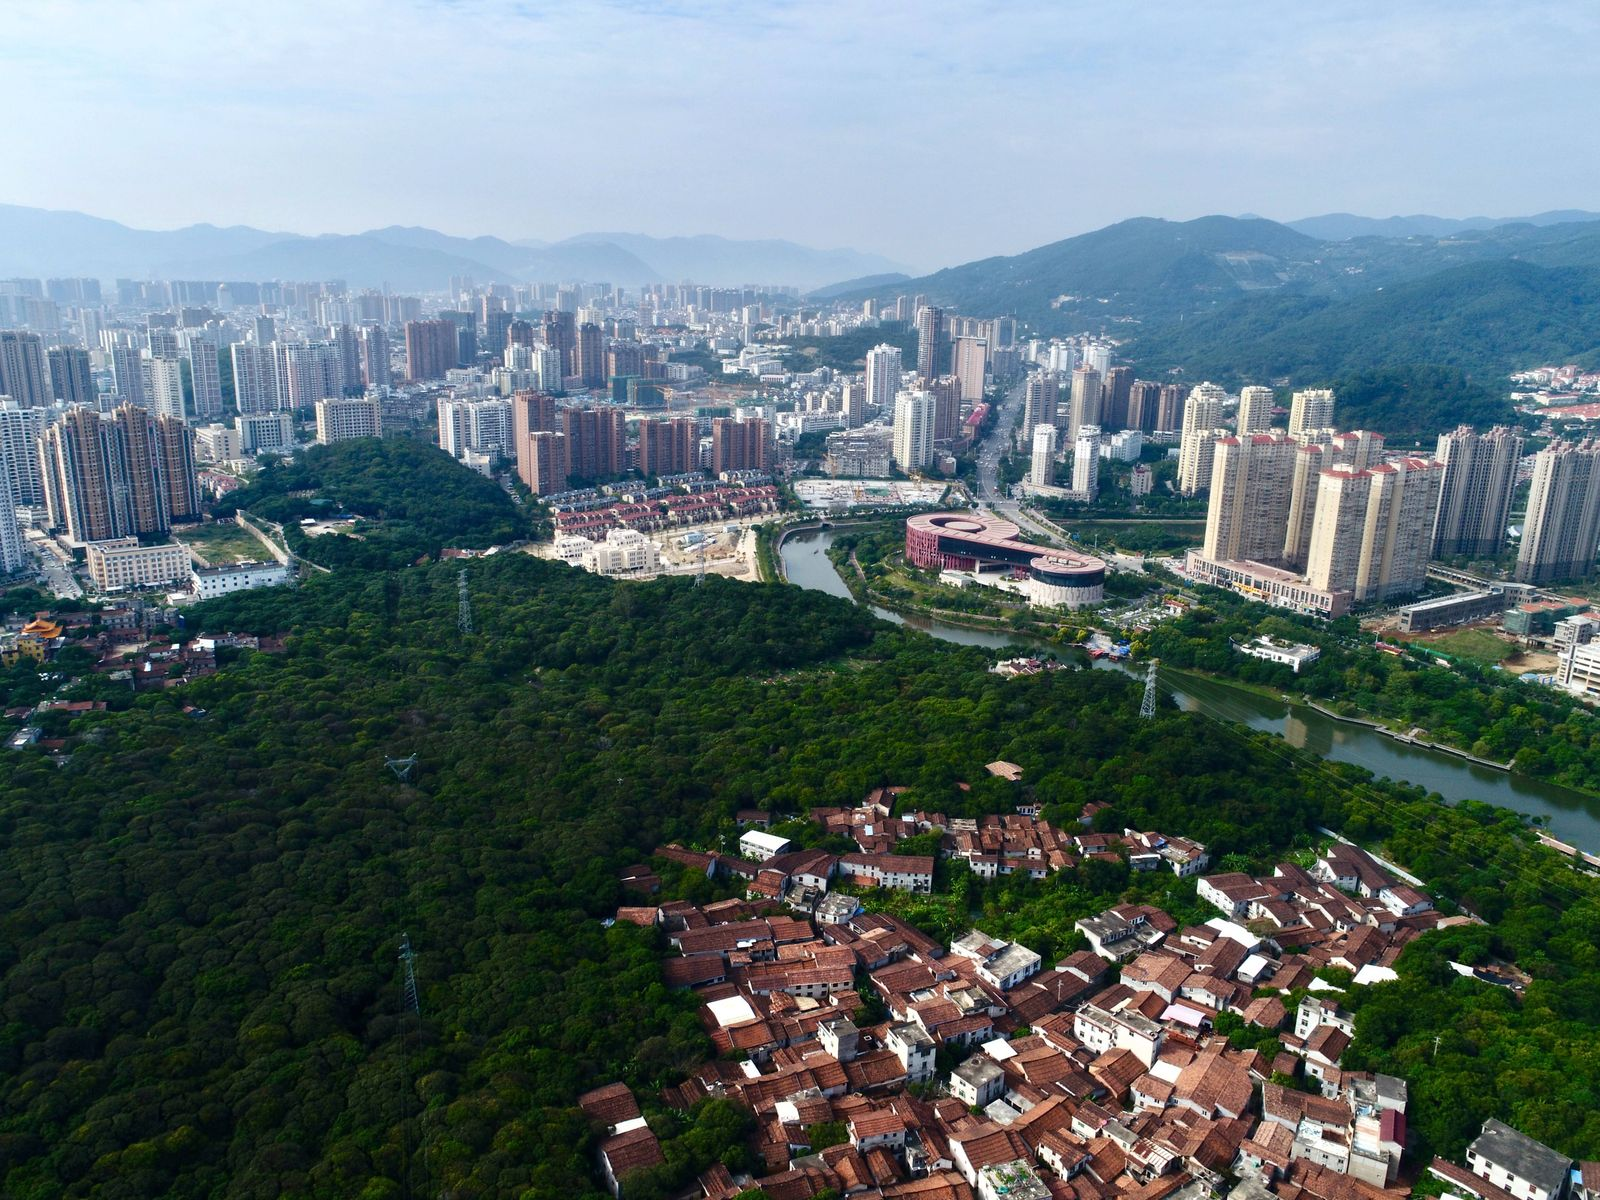 181025 PUTIAN Oct 25 2018 Aerial photo taken on Oct 25 2018 shows a view of Shouxi Park